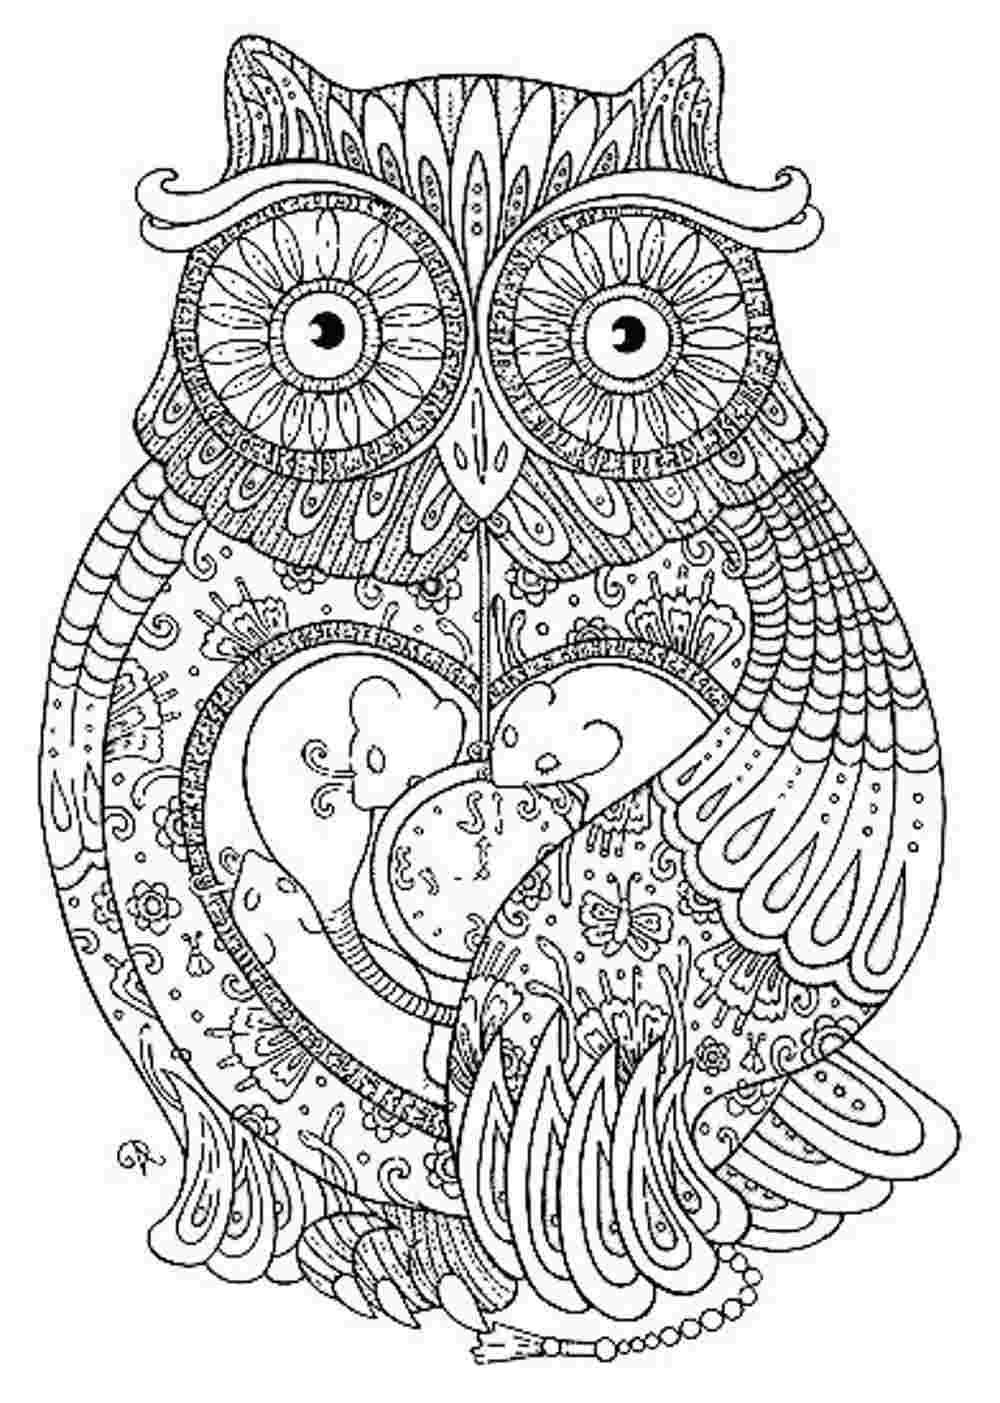 owl coloring pages for adults  Printable Kids Colouring Pages